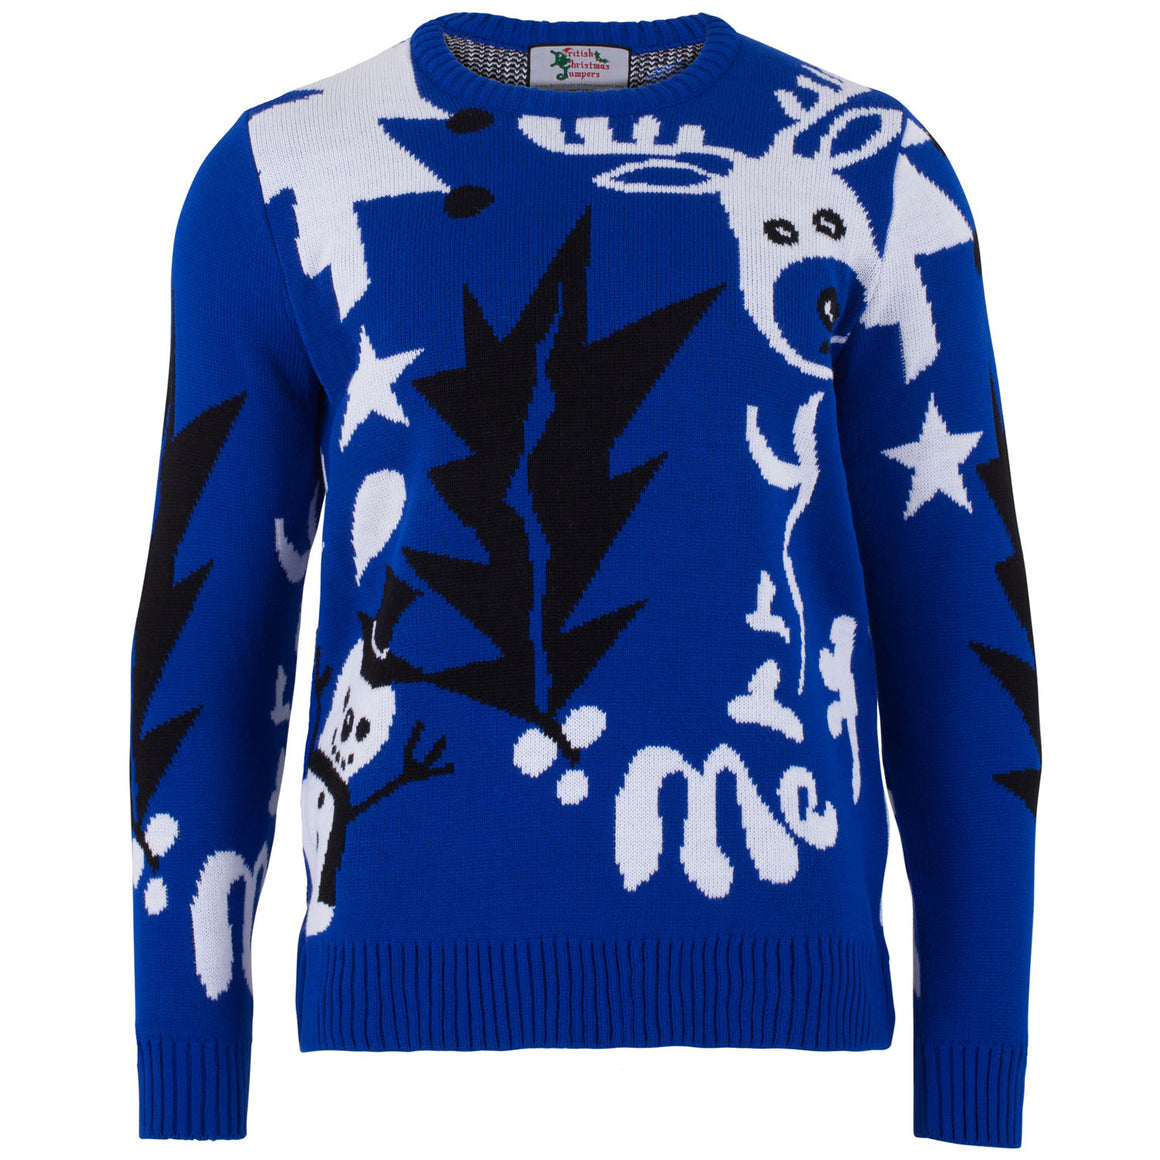 Snowtess - Mens Christmas Jumper